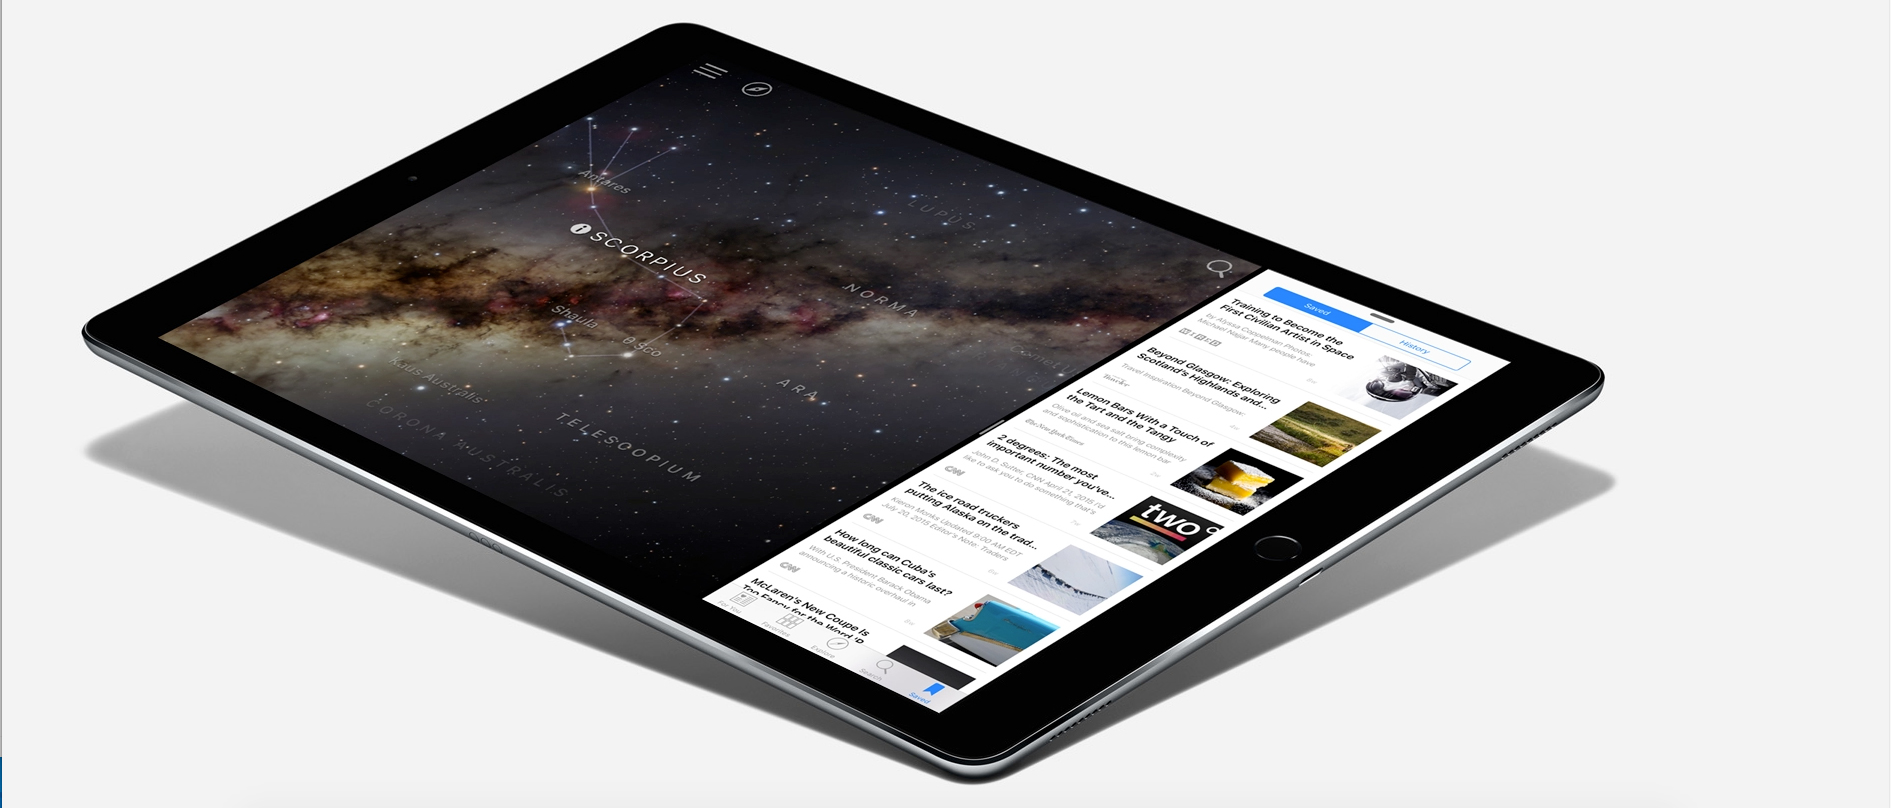 The iPad Pro will reportedly go on sale Nov. 11